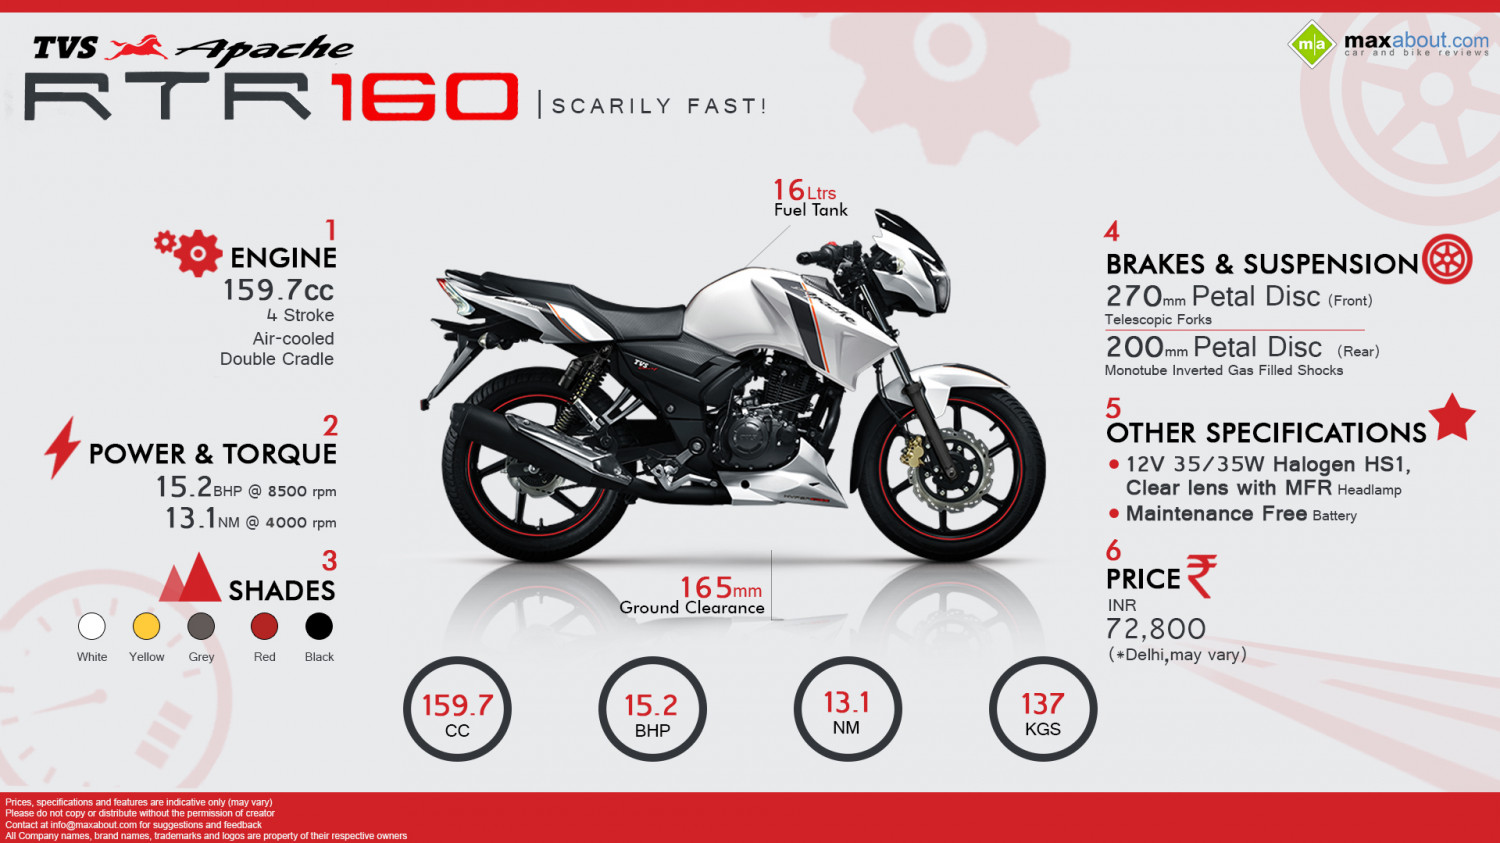 2014 TVS Apache RTR 160 - Scarily Fast! Infographic